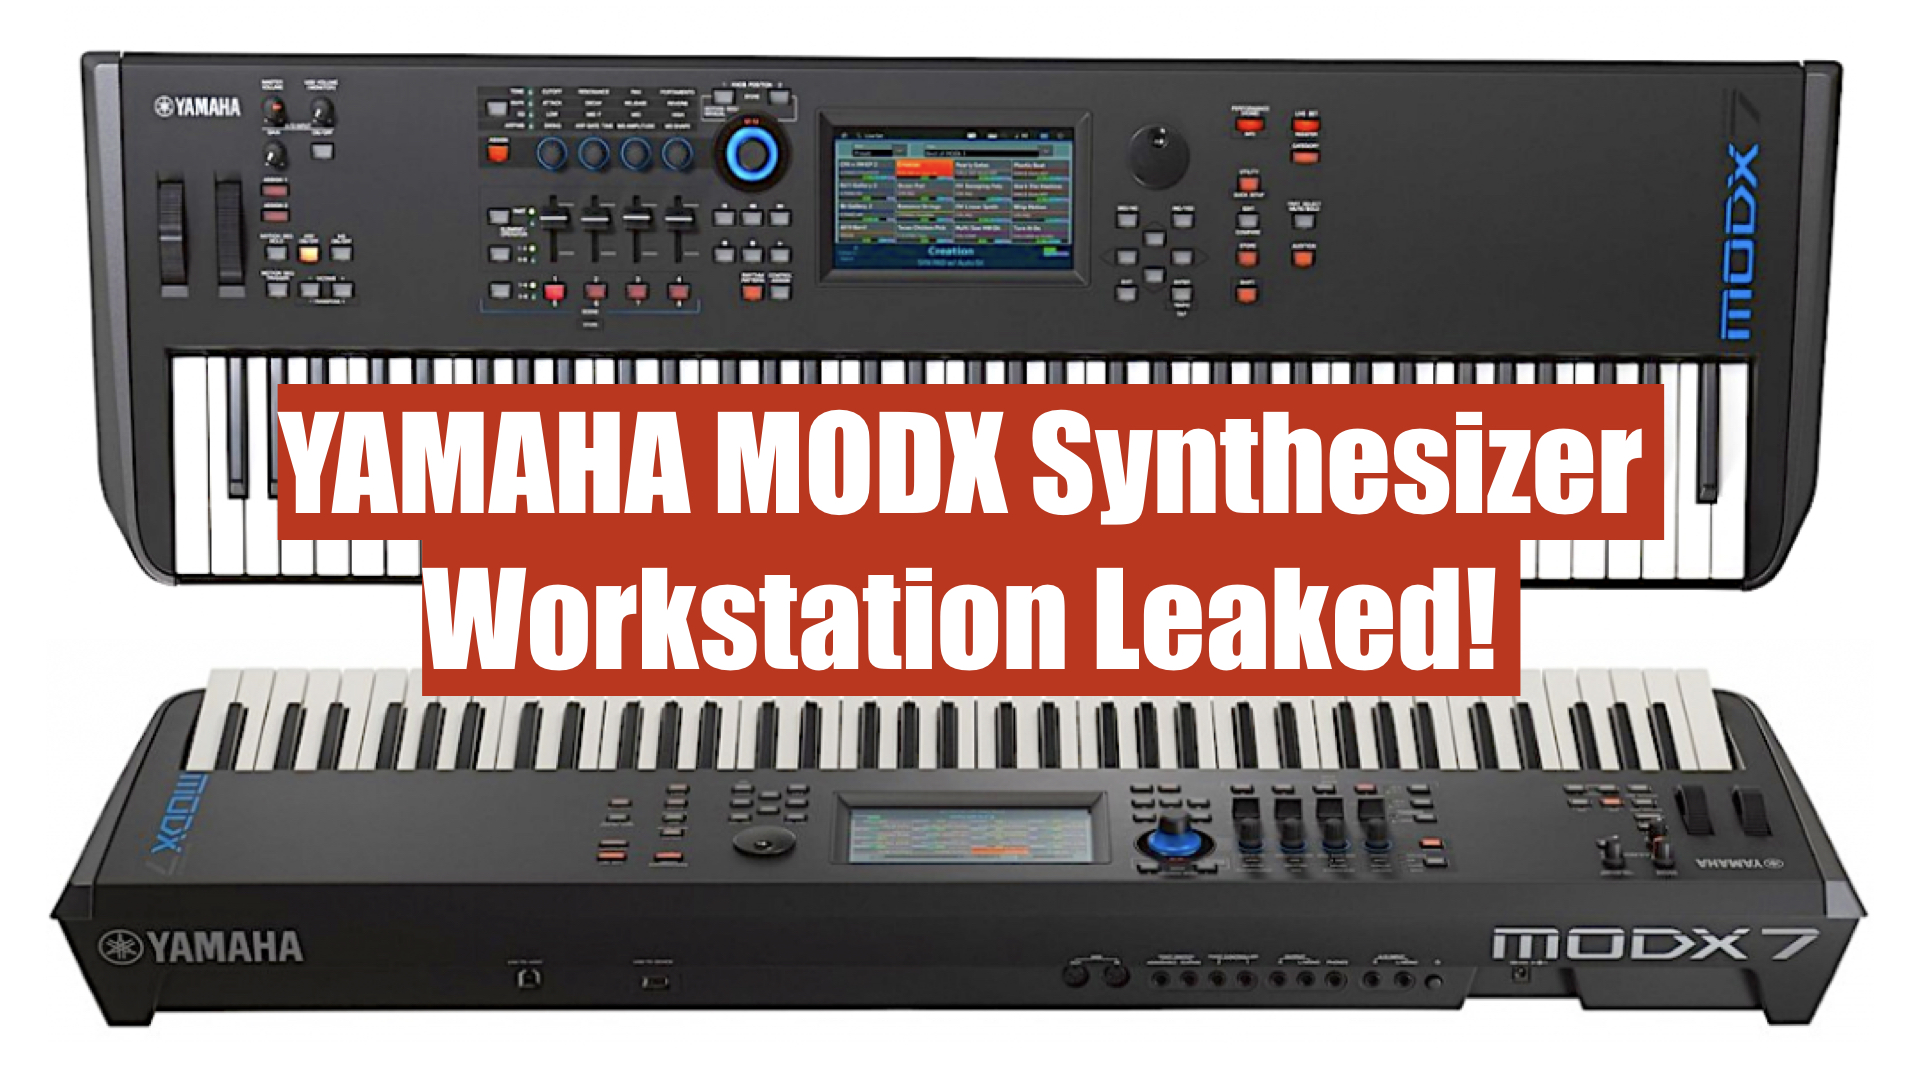 New Yamaha MODX Synthesizer Workstation Leaked!